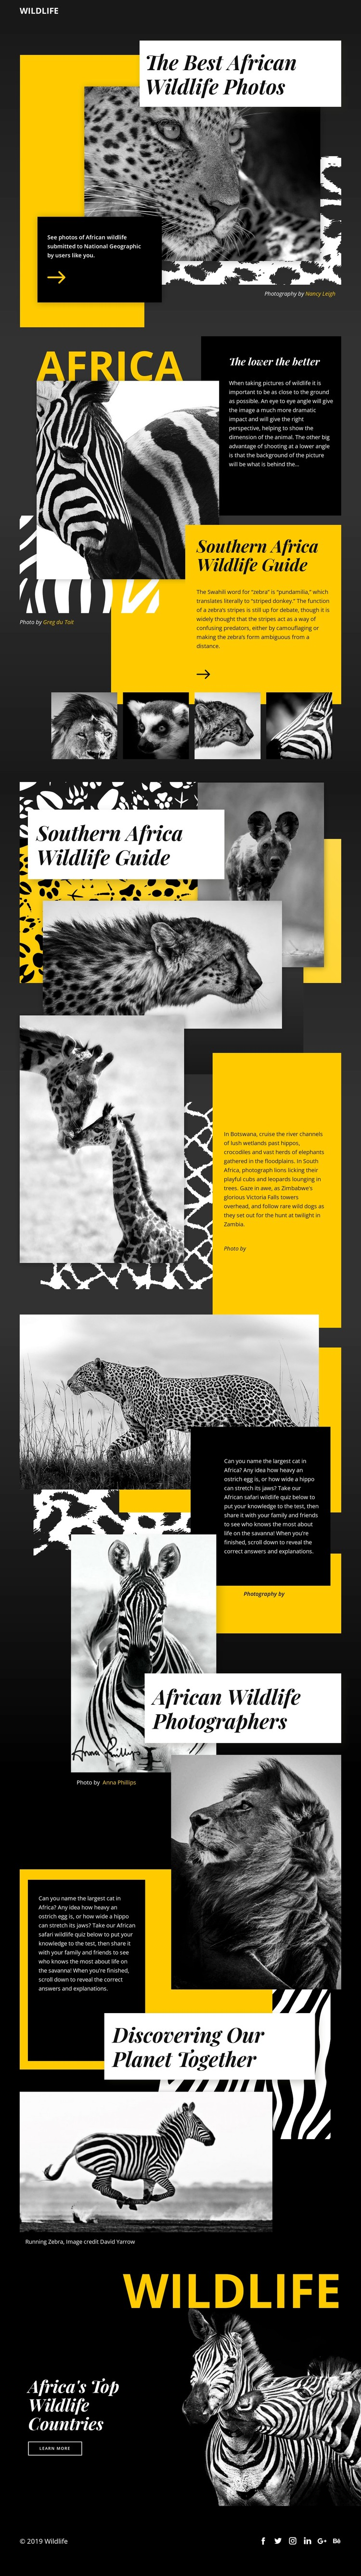 Wildlife Photos WordPress Template